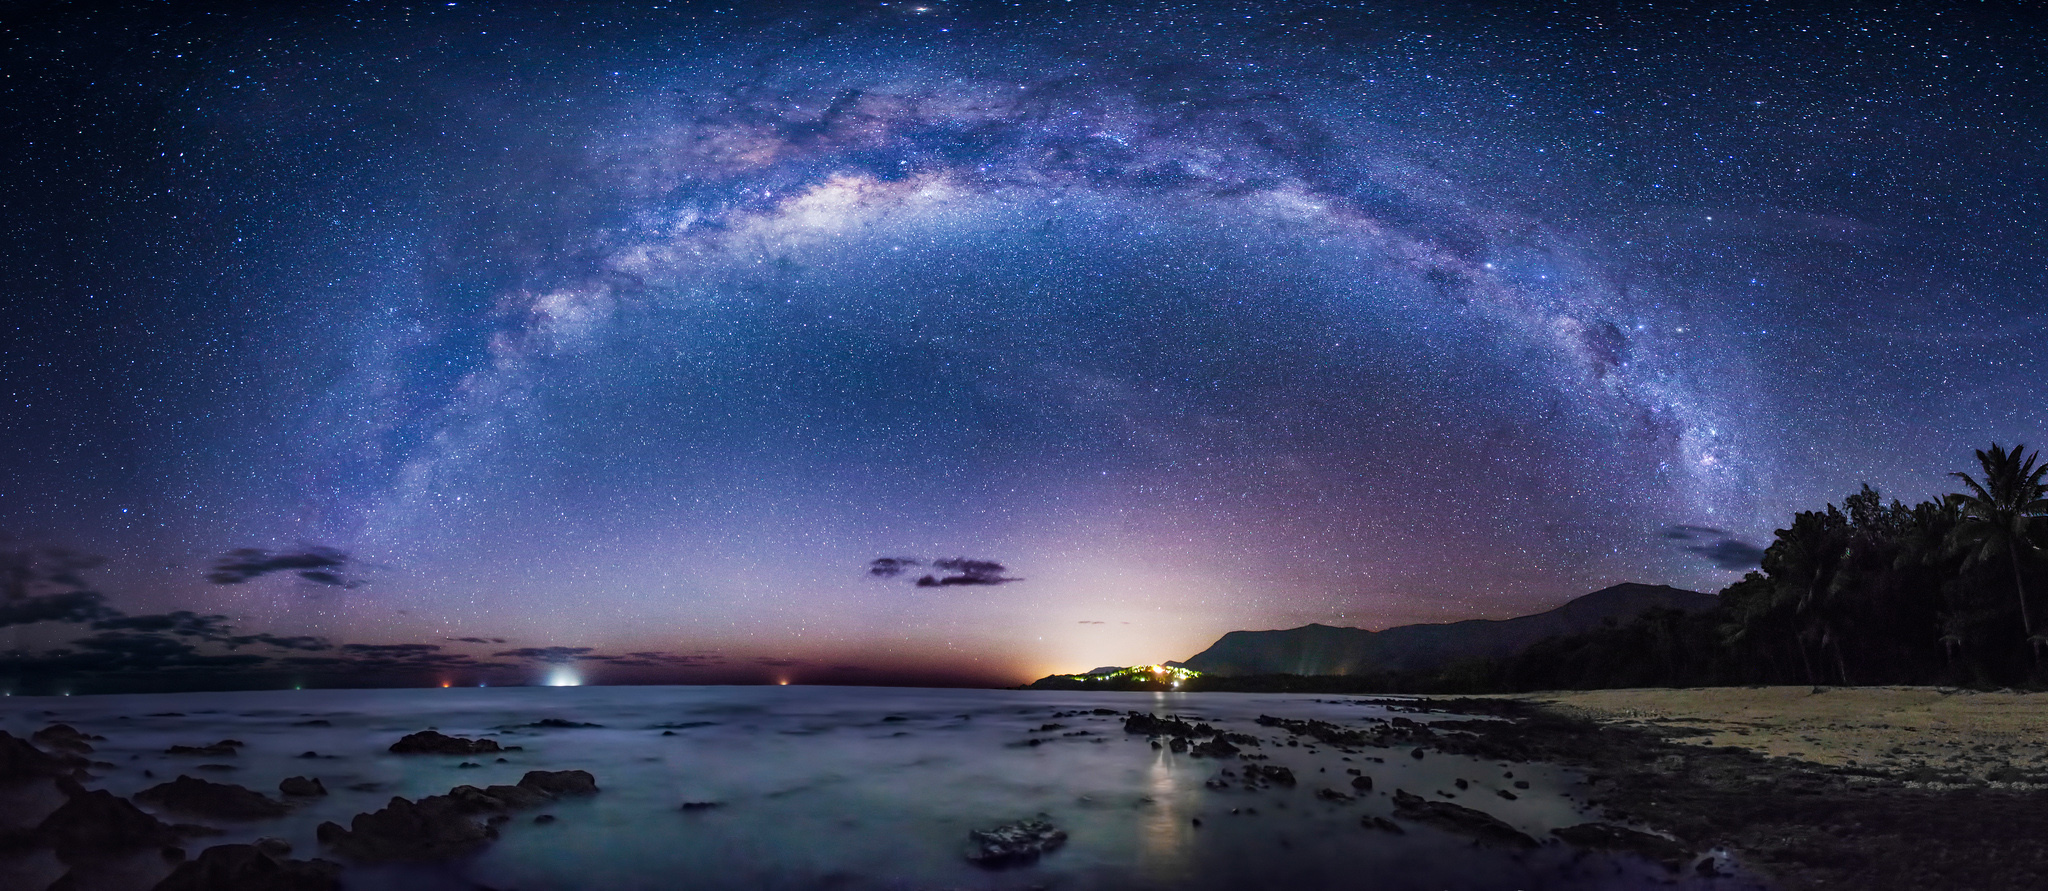 Hong Kong Wallpaper Iphone X 10 Mesmerizing Hd Images Of The Milky Way Hd Wallpapers